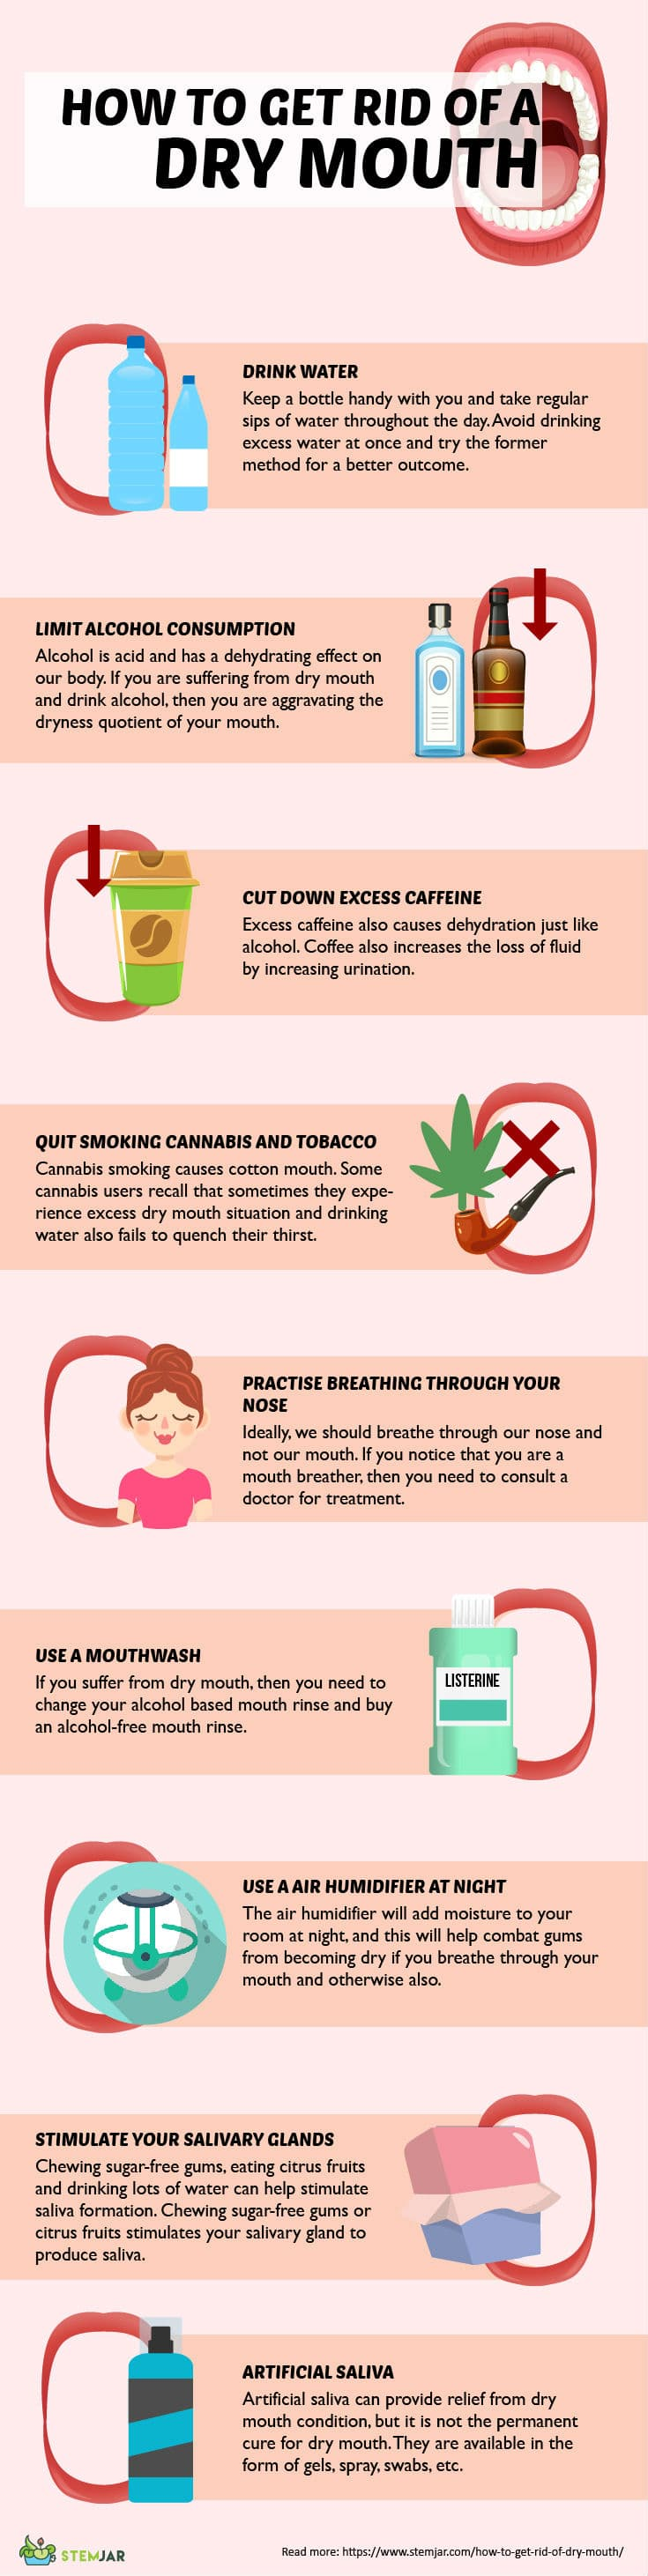 how to get rid of dry mouth infographic